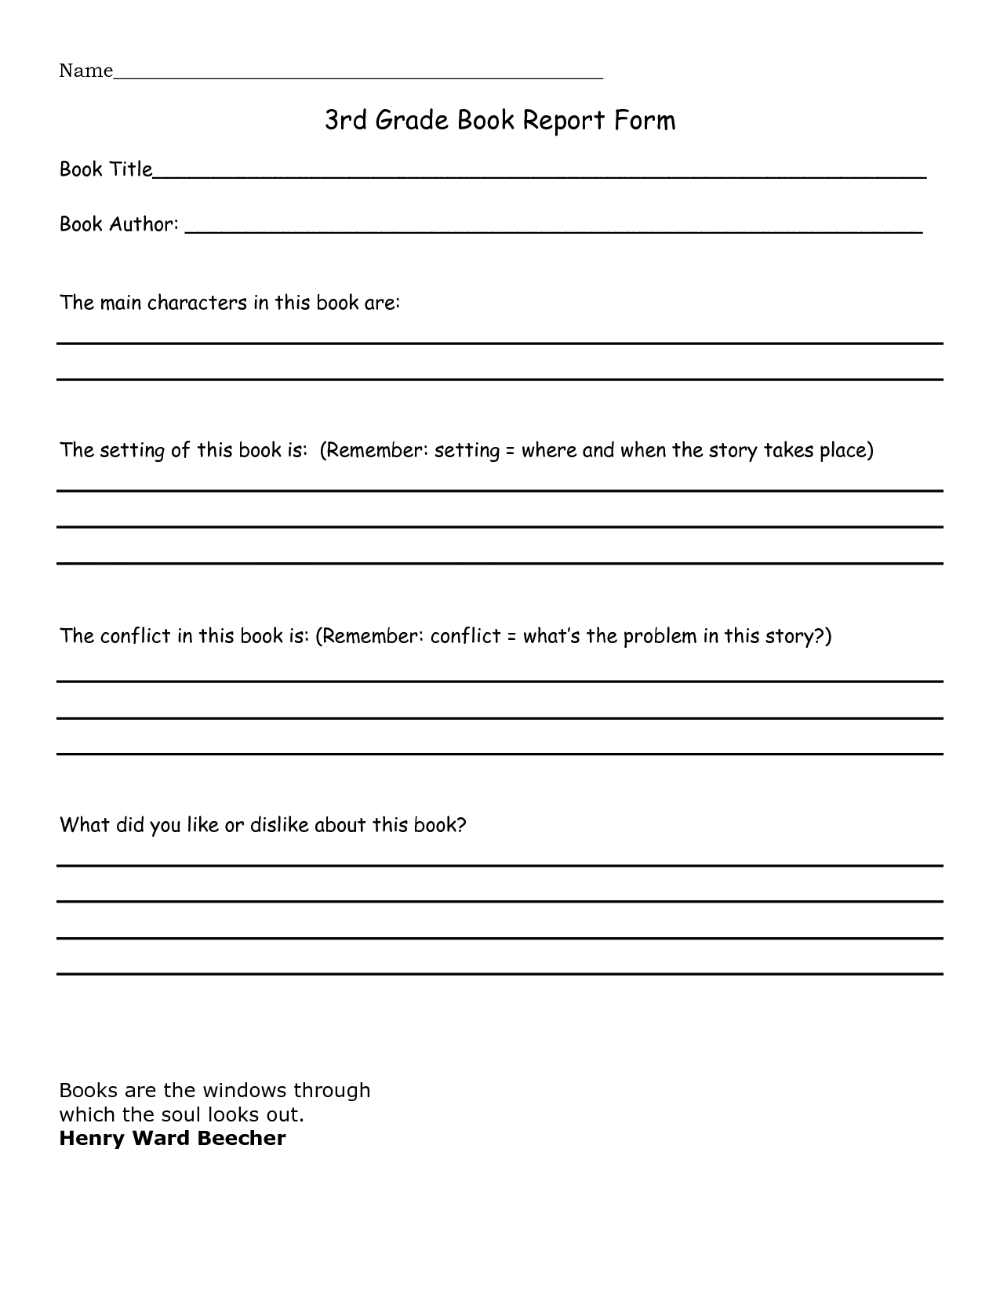 Book Report Rd Grade Template Google Search Home Education Intended For Science Report Template Ks2 10 Pro Book Report Templates Book Report 3rd Grade Books